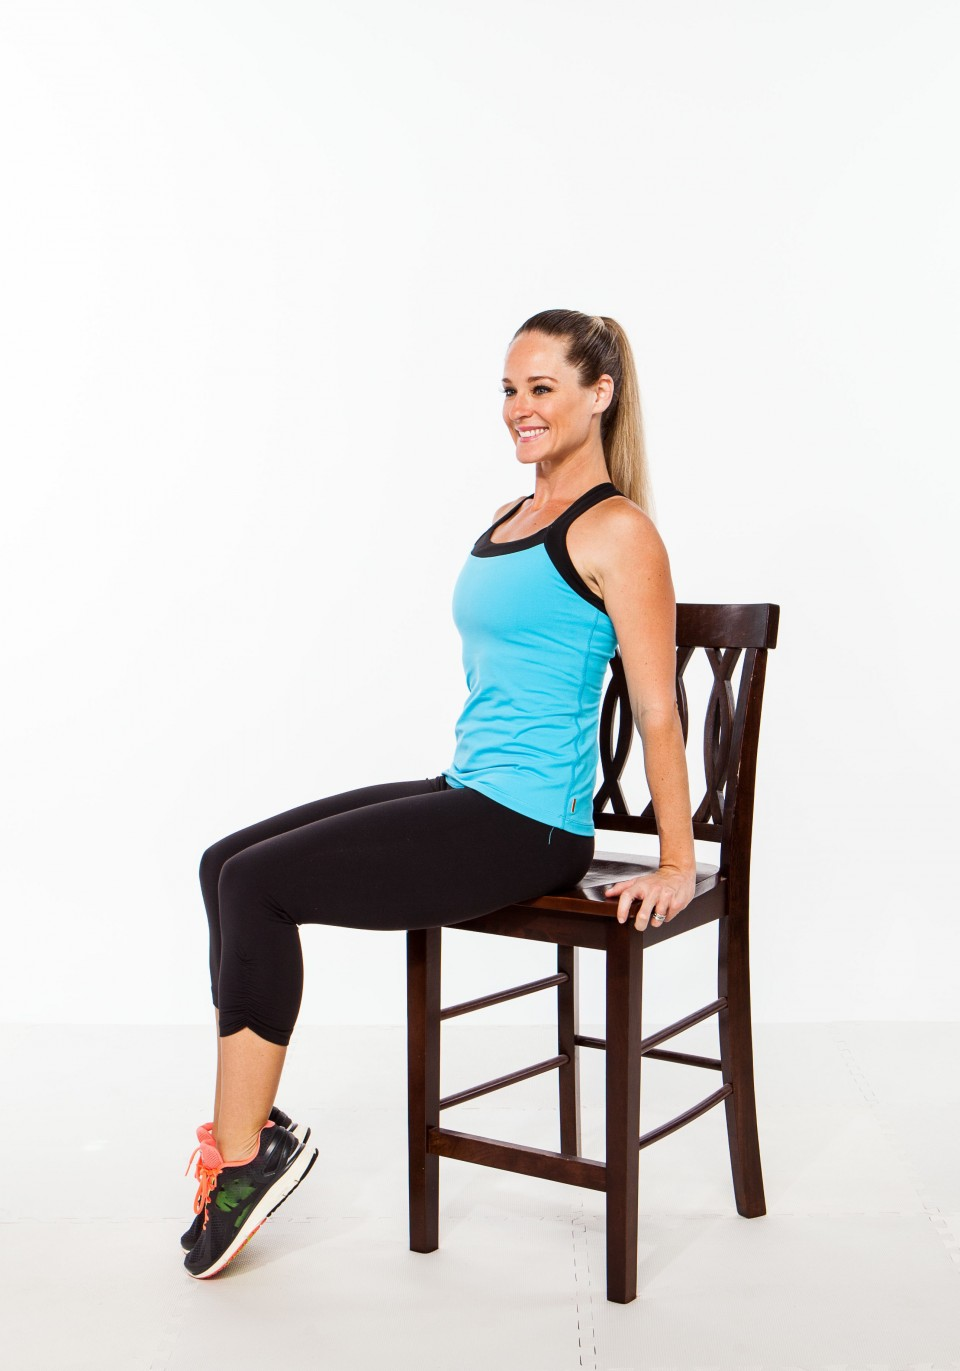 4. Tip toe/calve stretching - 5 minutes sneaky office chair exercise workout